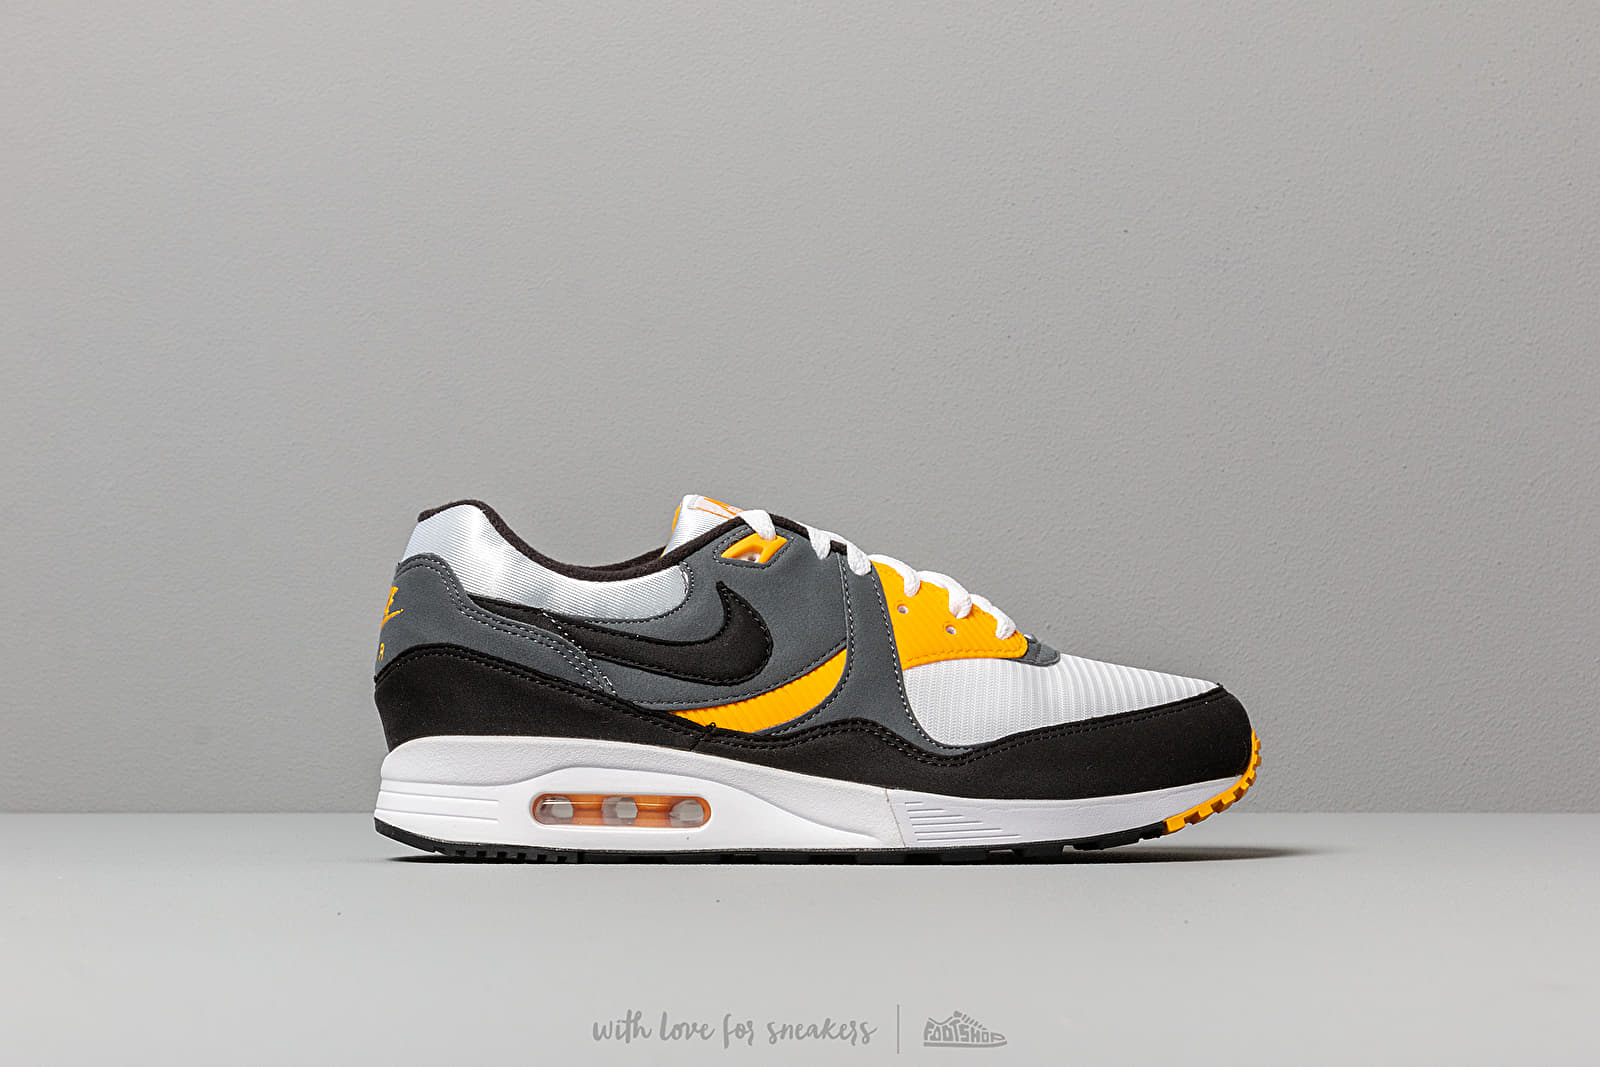 timeless design 5a74e 4f374 Nike Air Max Light White  Black-Dark Grey-University Gold at a great